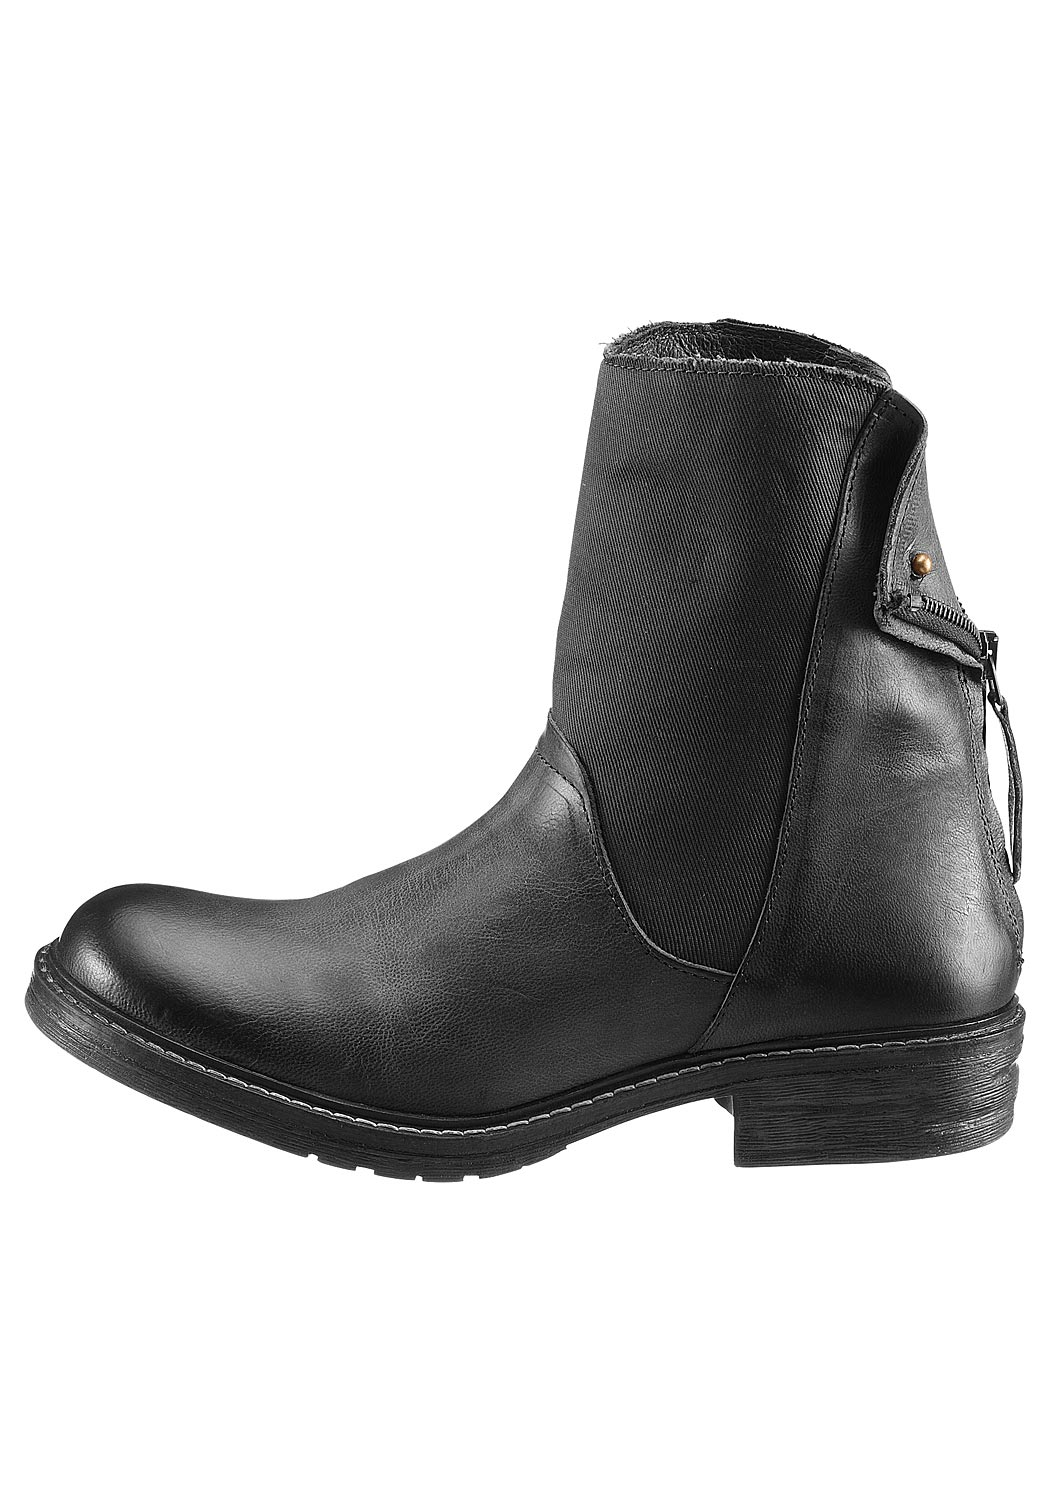 Leder-Stiefelette in Antik-Optik